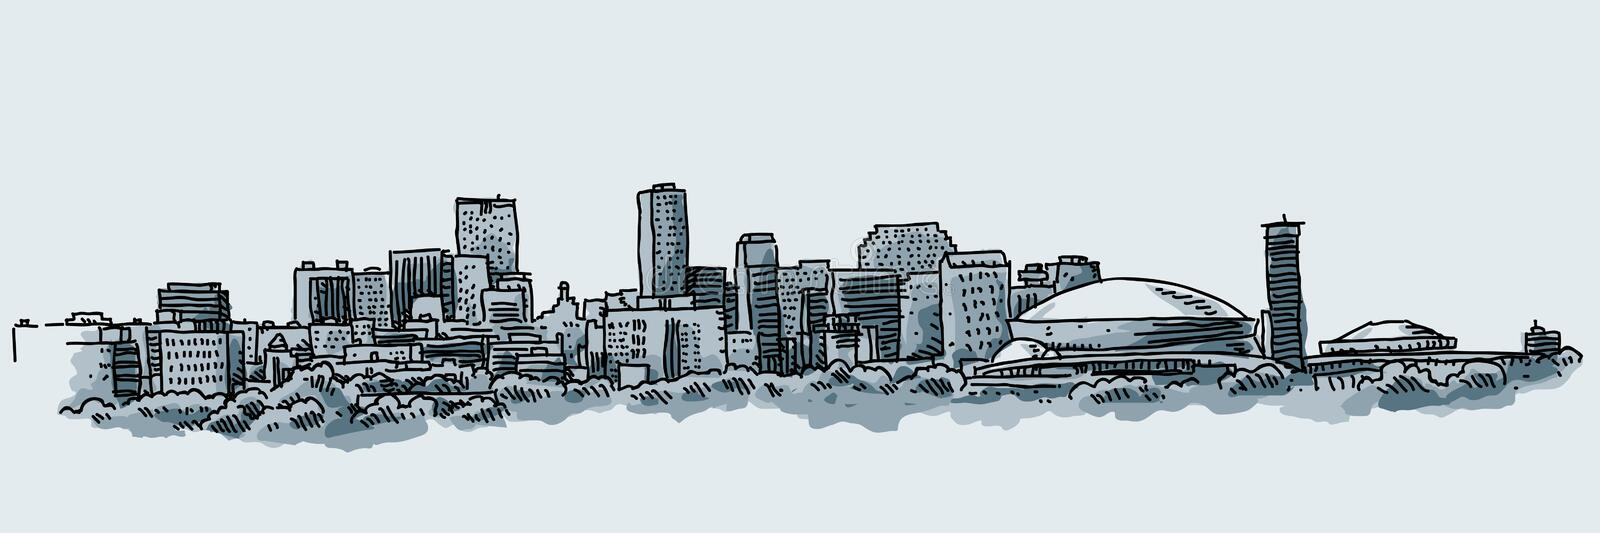 City of New Orleans royalty free illustration